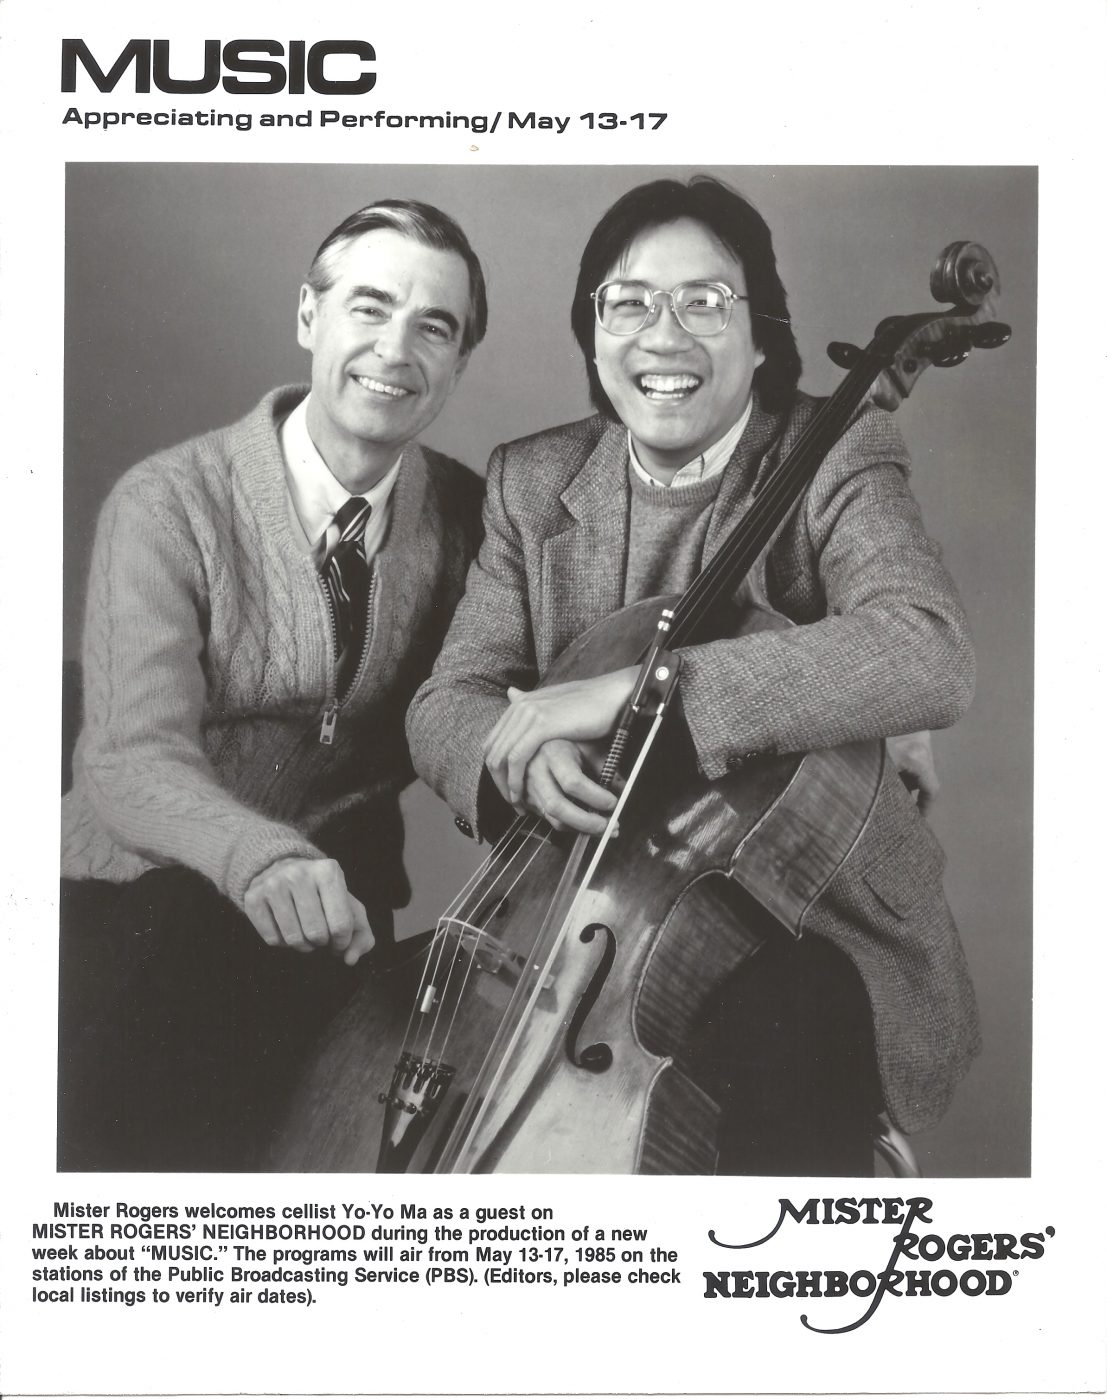 28 May 2019 Posted. Image of Mister Rogers and Yo-Yo Ma, Courtesy of Alex Jay, Museum of Chinese in America (MOCA) Collection. 罗杰斯先生和马友友的合影,Alex Jay捐赠,美国华人博物馆(MOCCA)馆藏